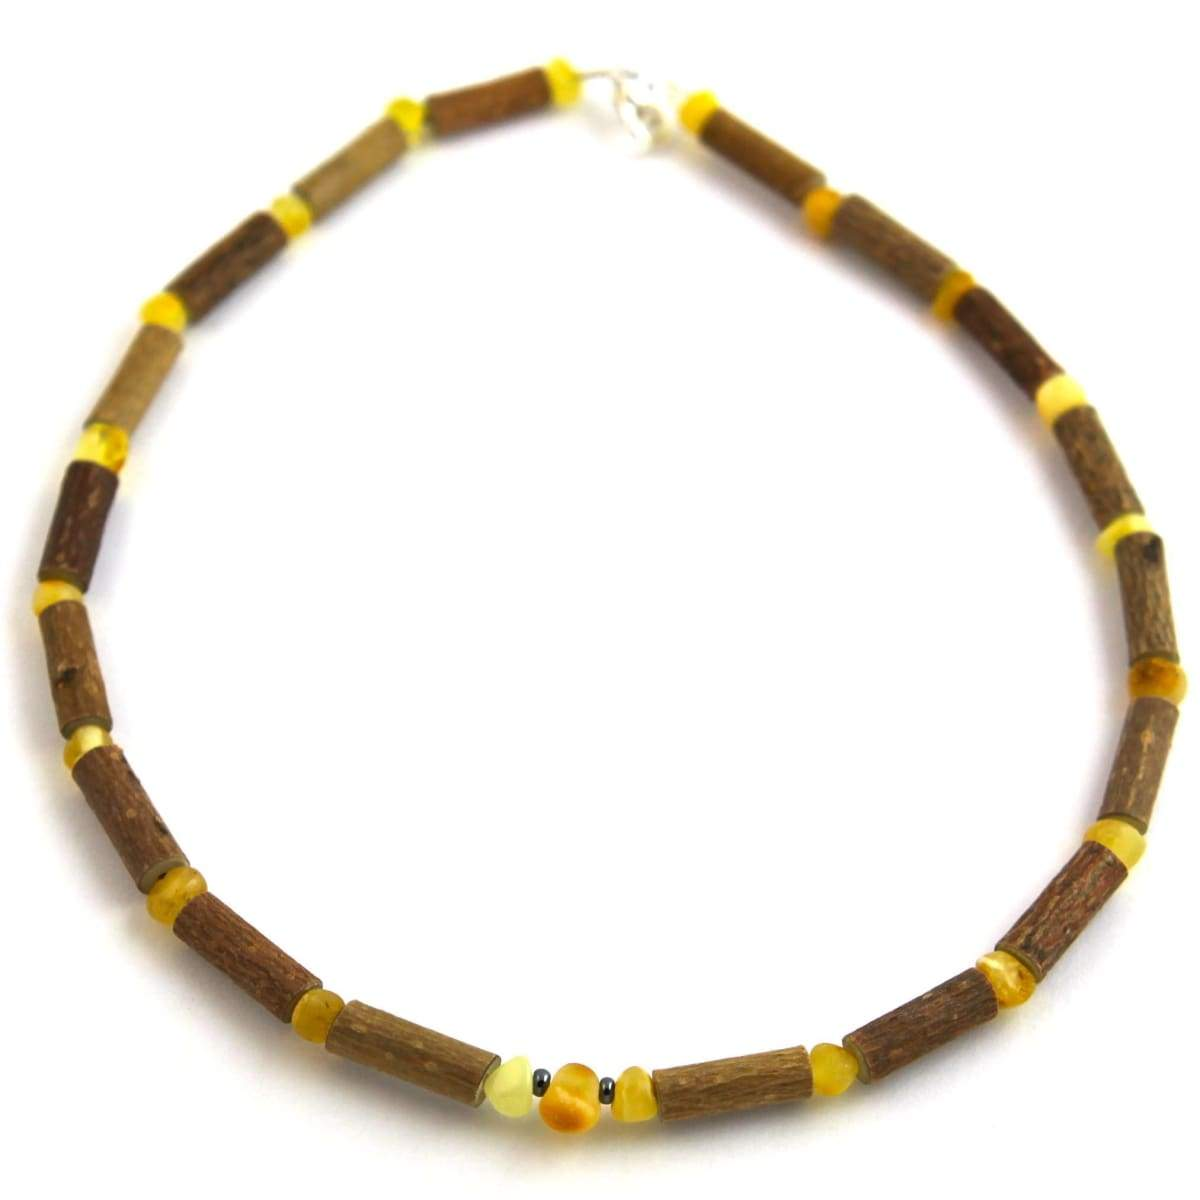 Hazel-Amber Milk & Butter - 11 Necklace - Lobster Claw Clasp - Hazelwood & Baltic Amber Jewelry